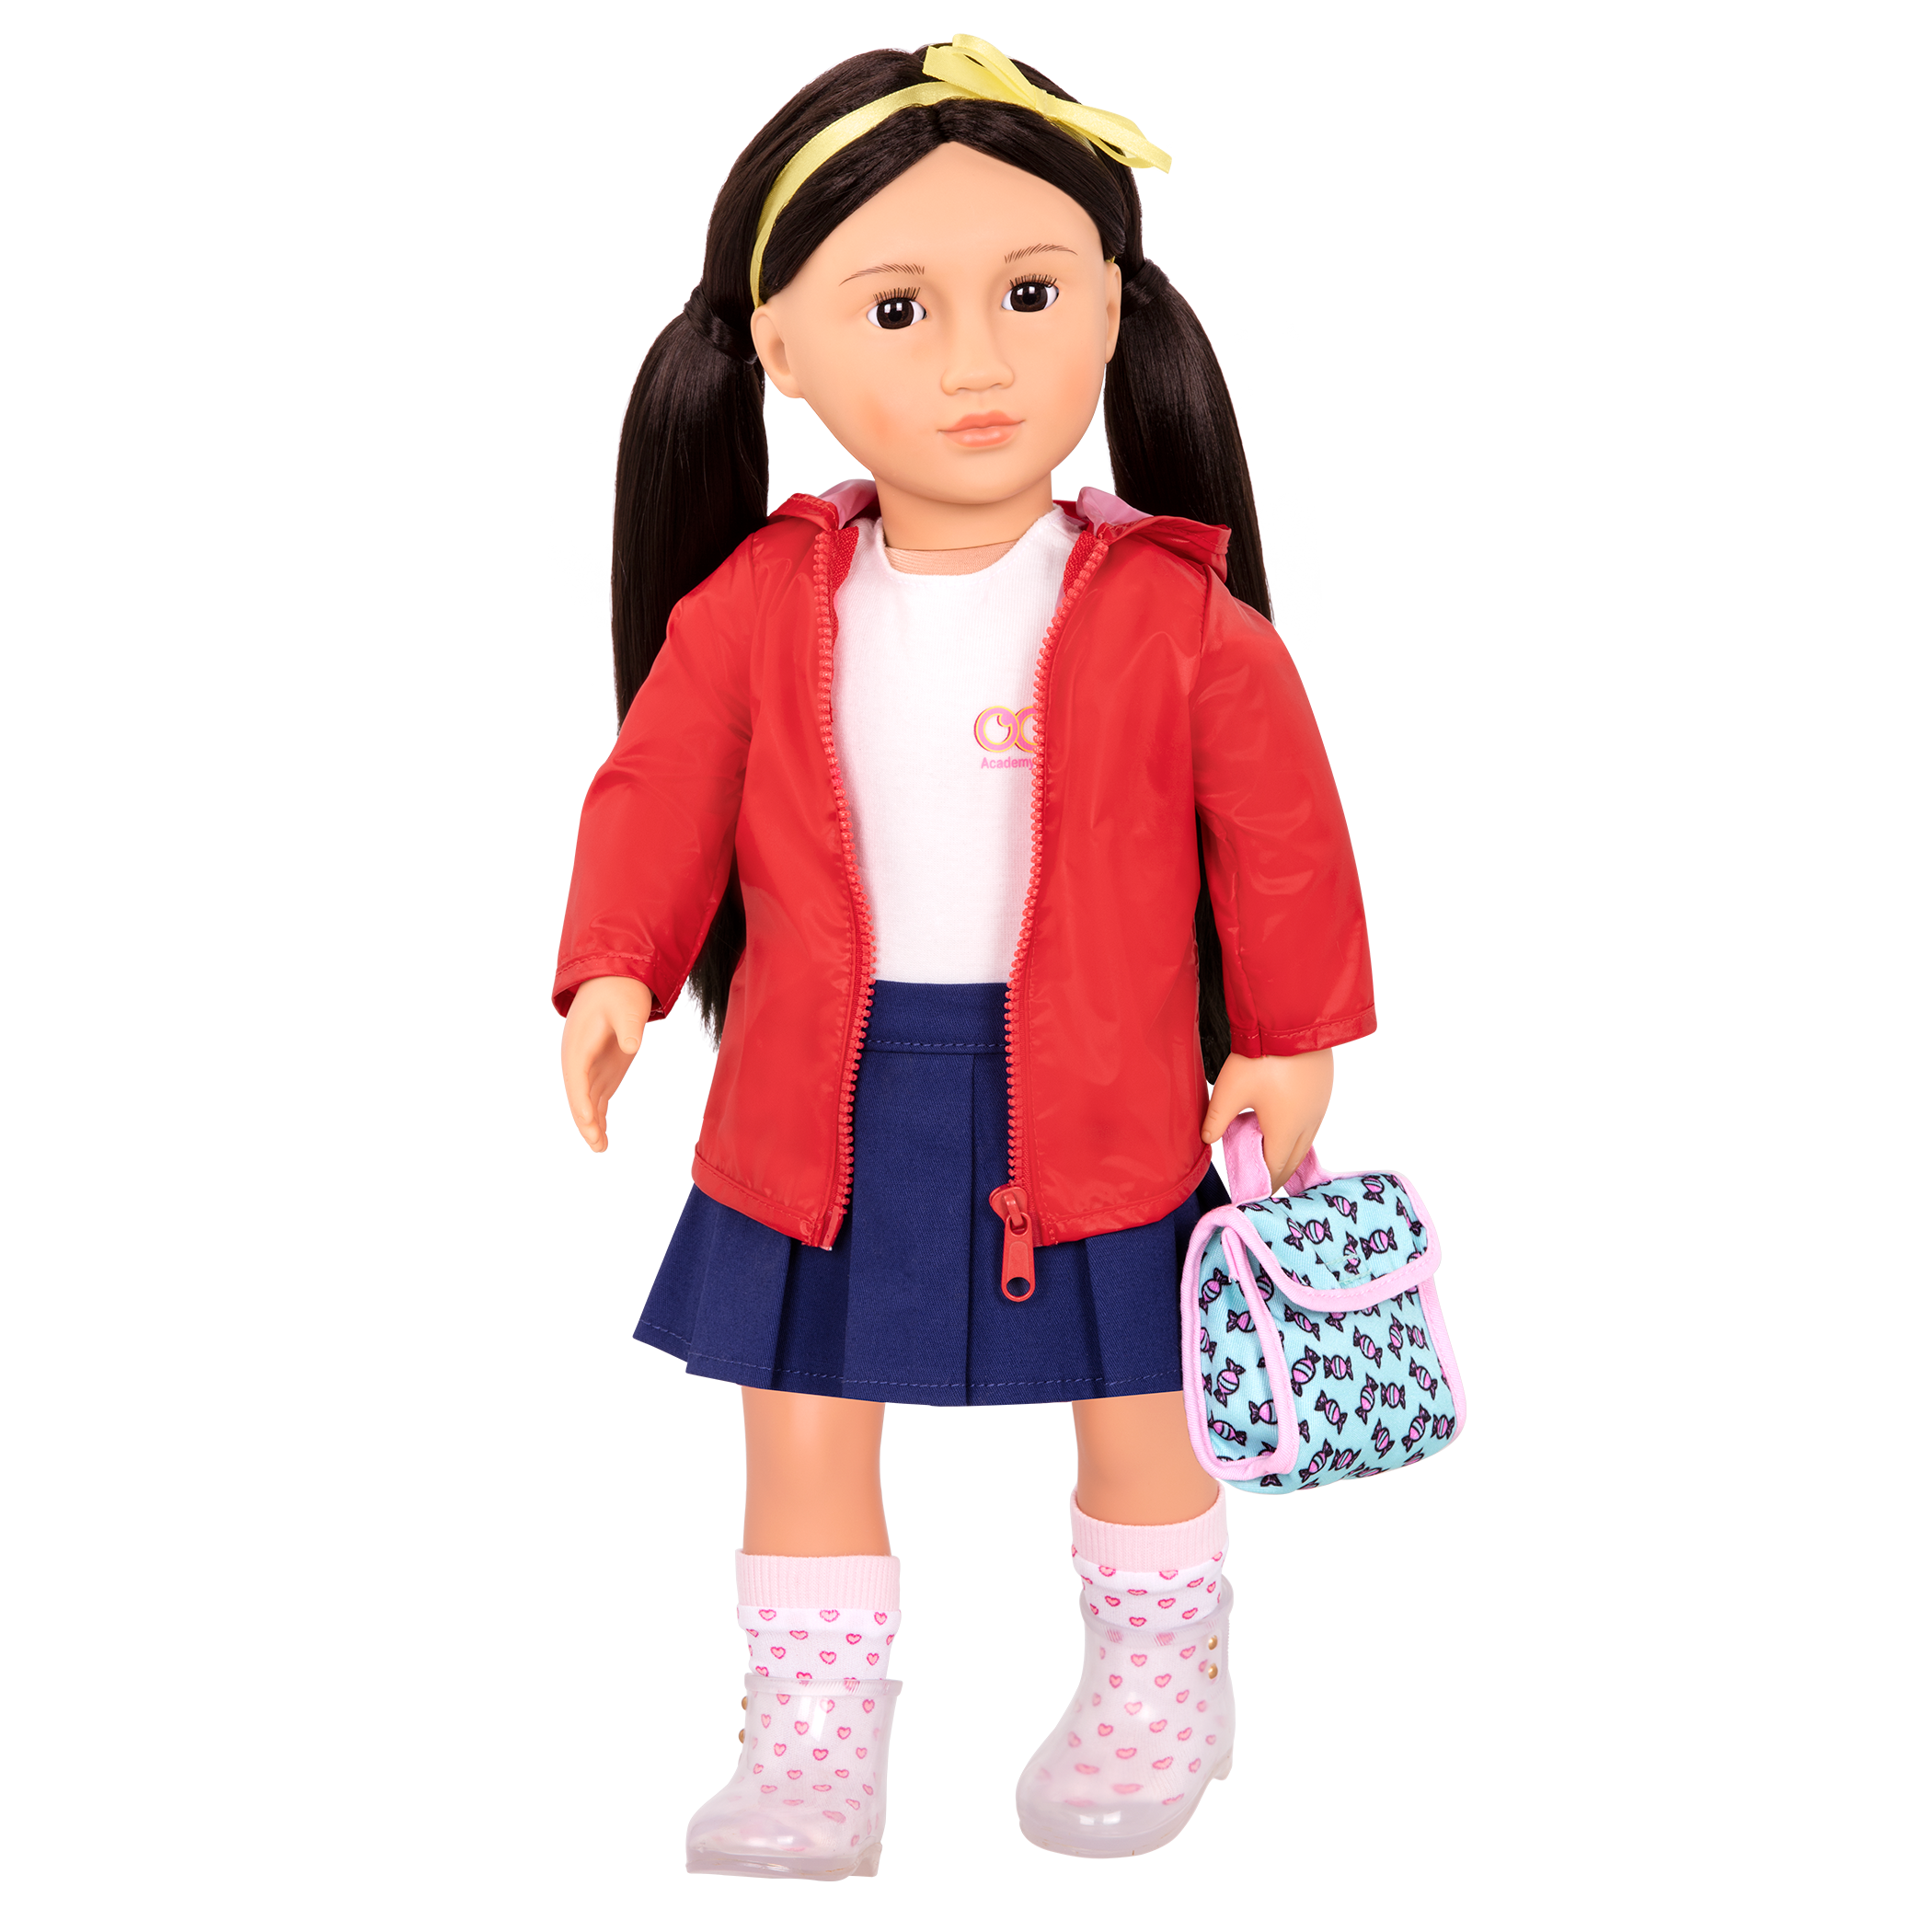 Aiko wearing Rainy Recess School Outfit with lunchbox